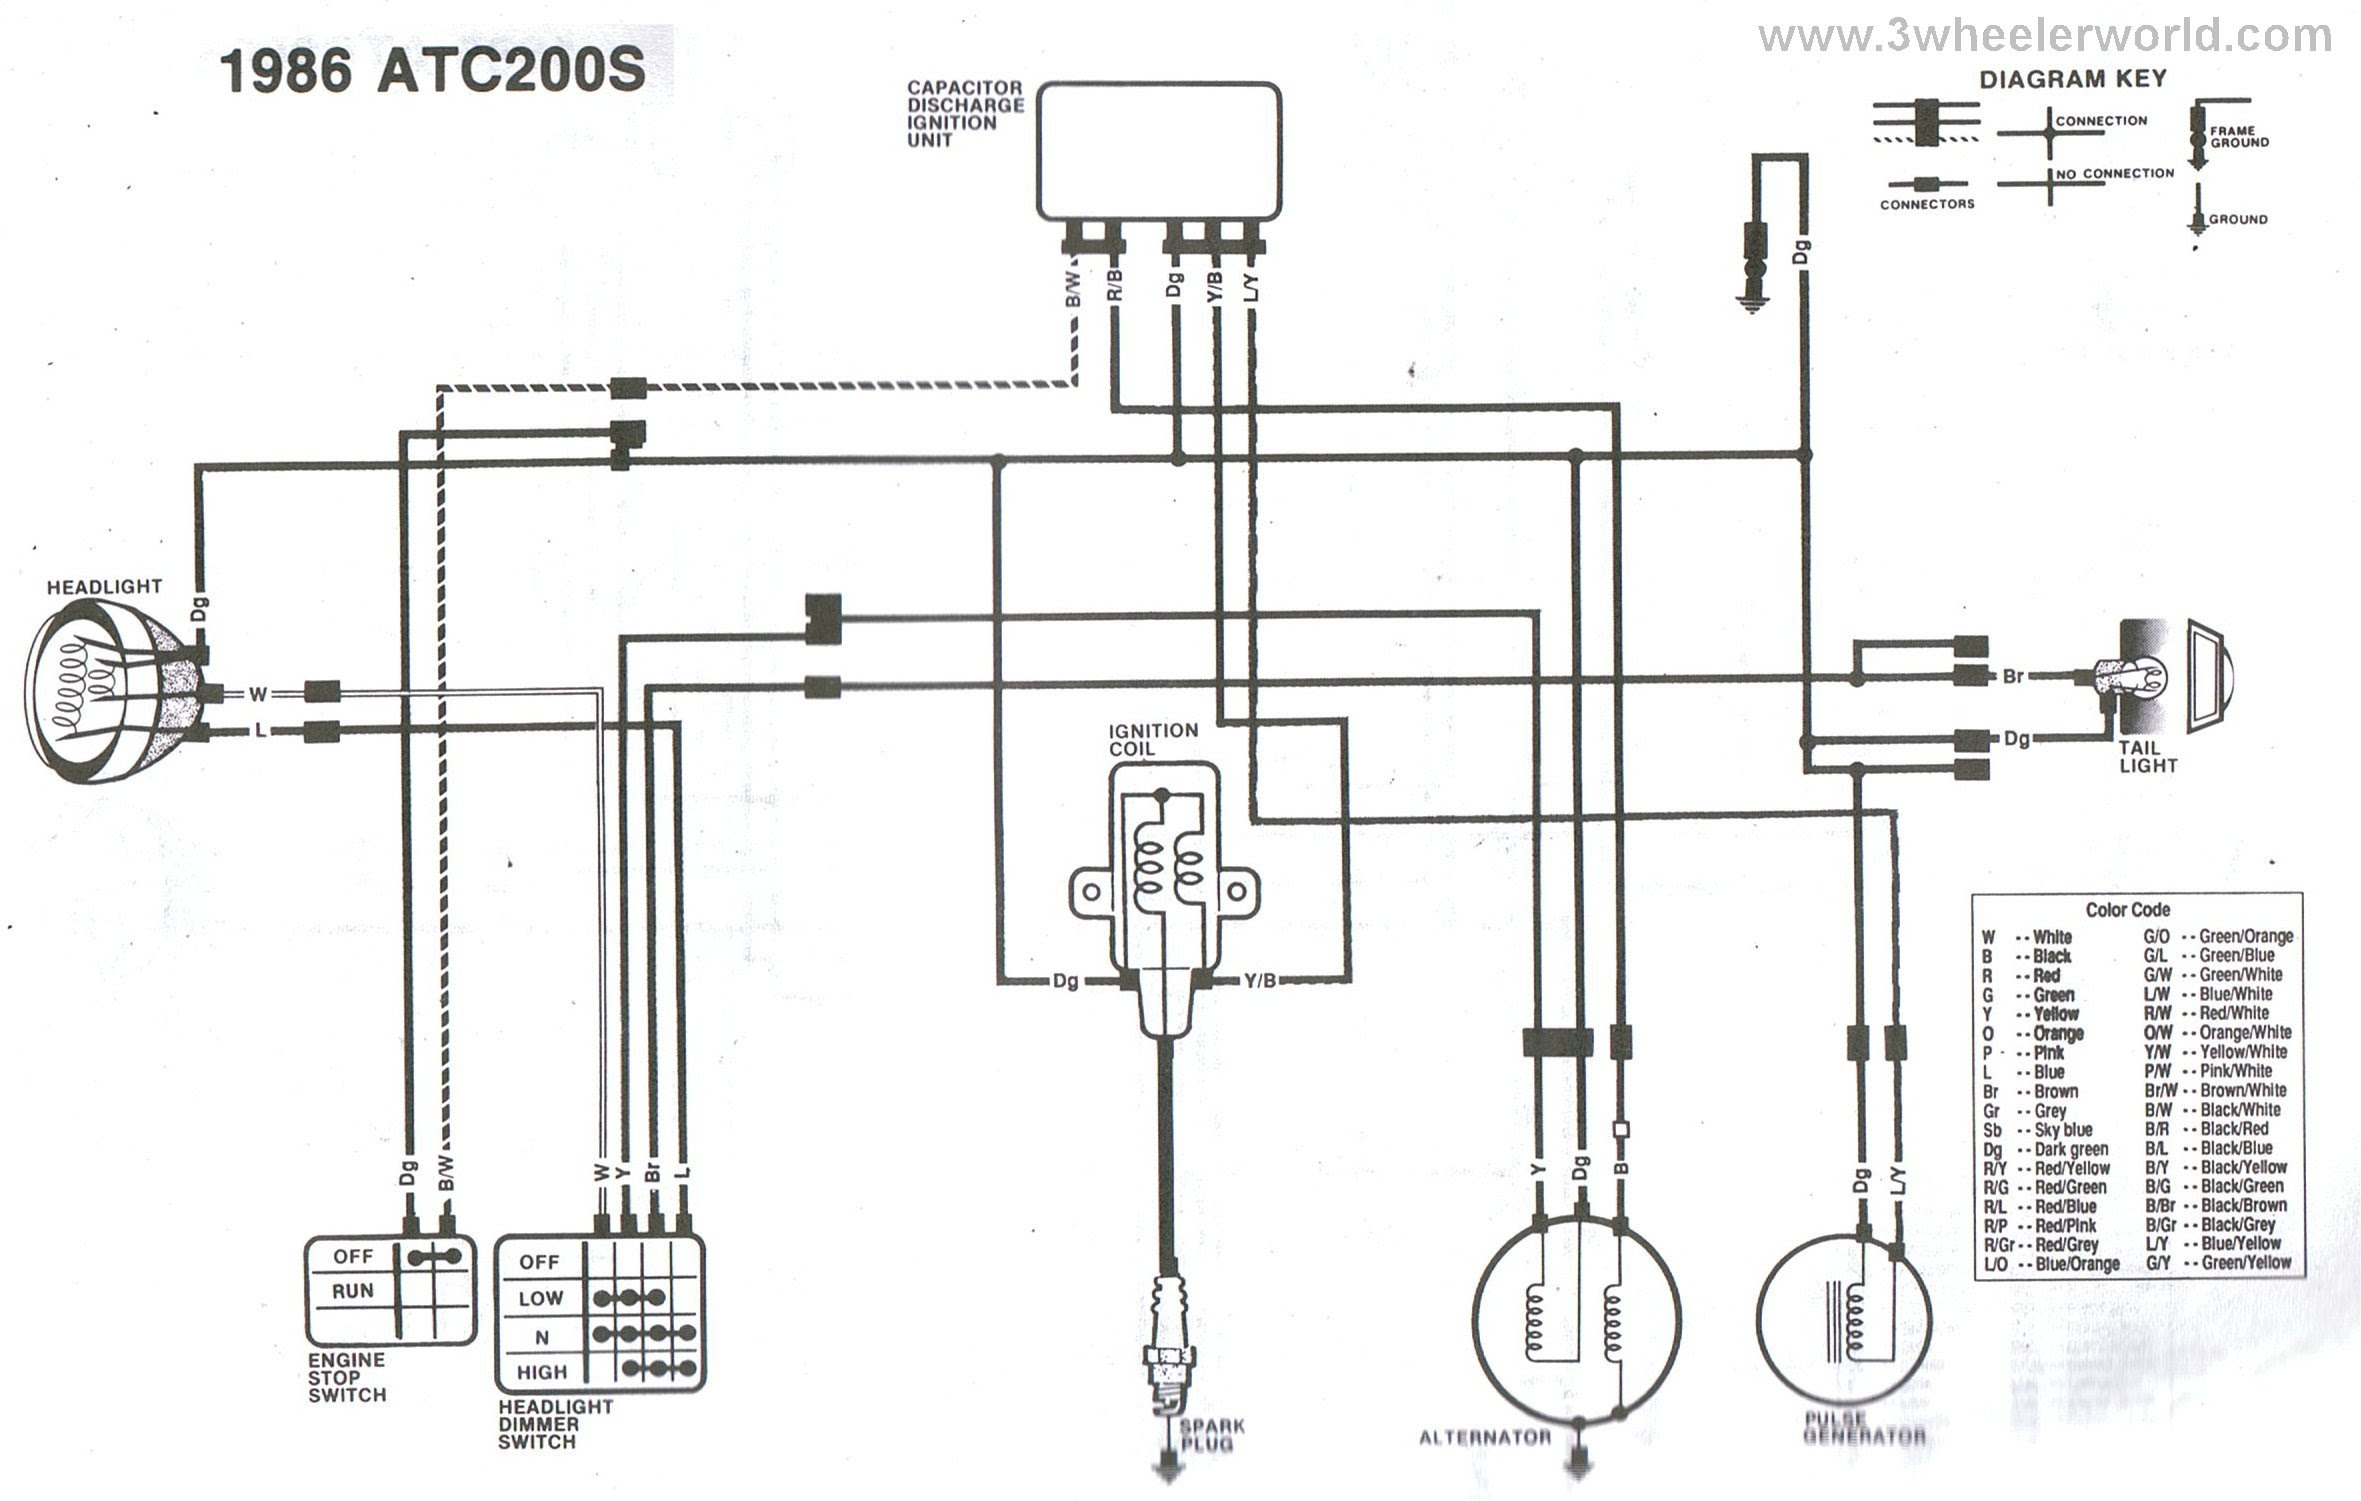 Diagram 1985 Honda 200s Atc Wiring Diagram Full Version Hd Quality Wiring Diagram Diagrampcy Orbicolare It